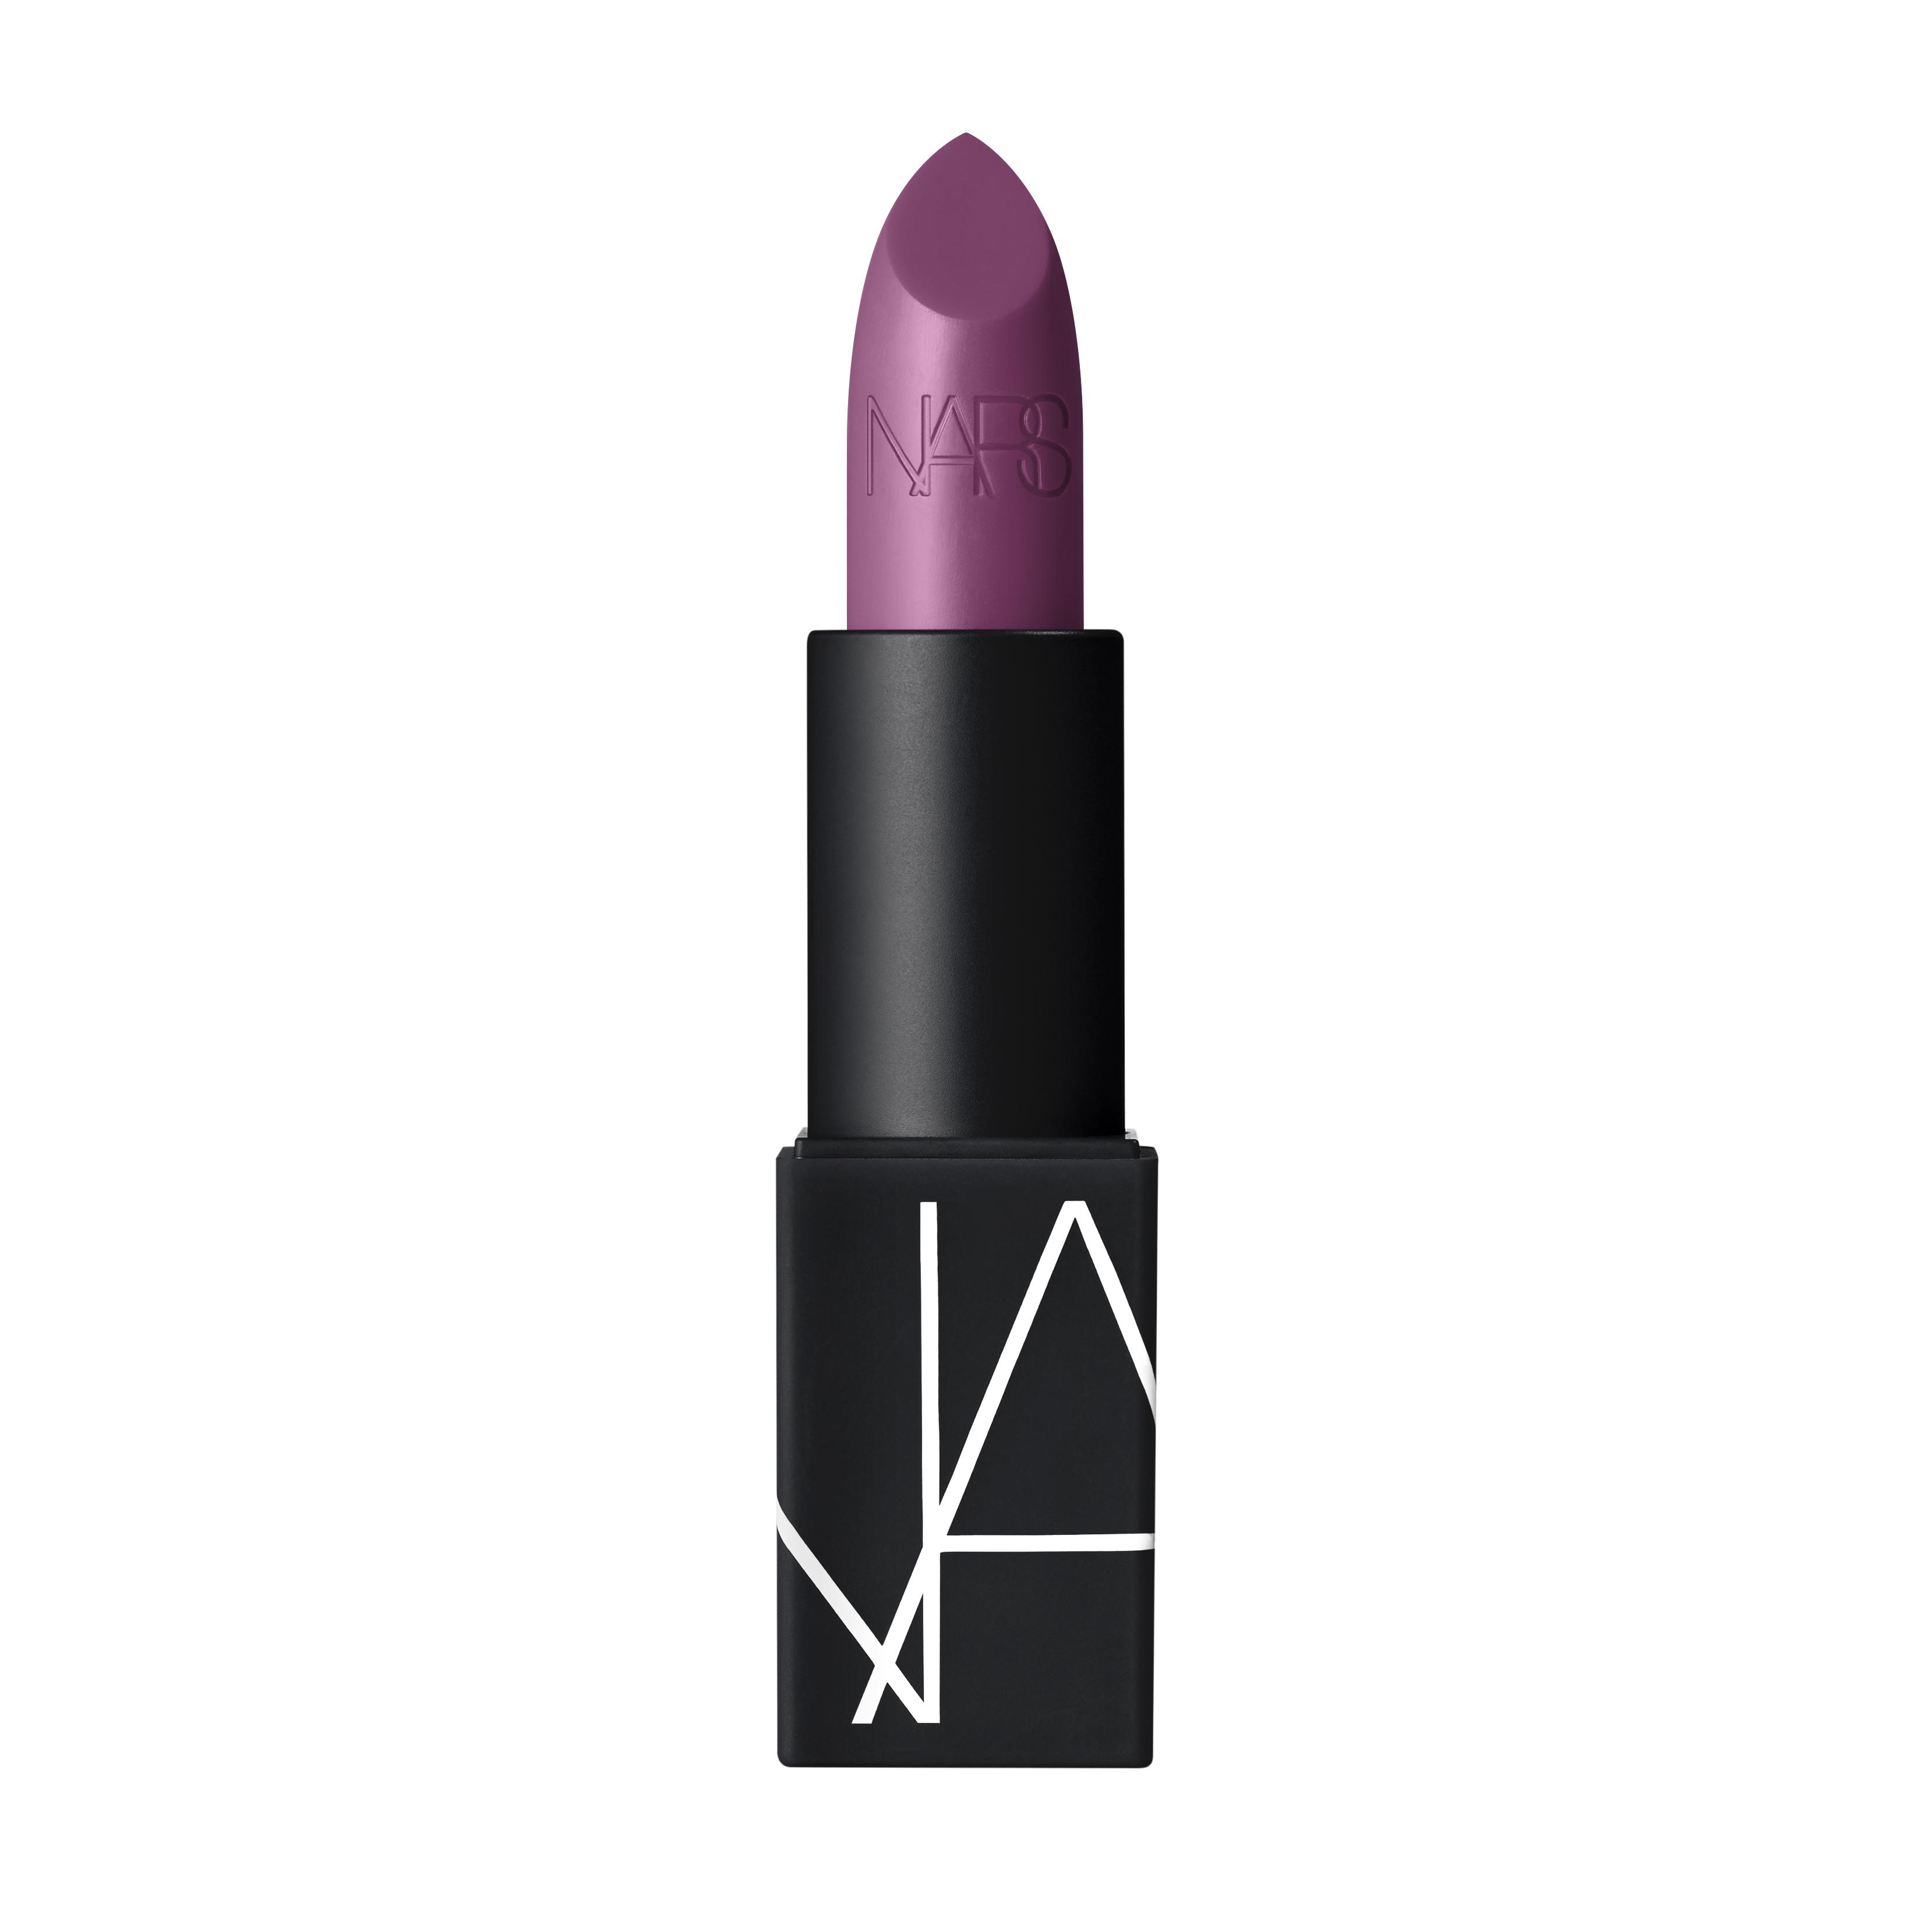 NARS Candy Stripper Sheer Lipstick Product Image